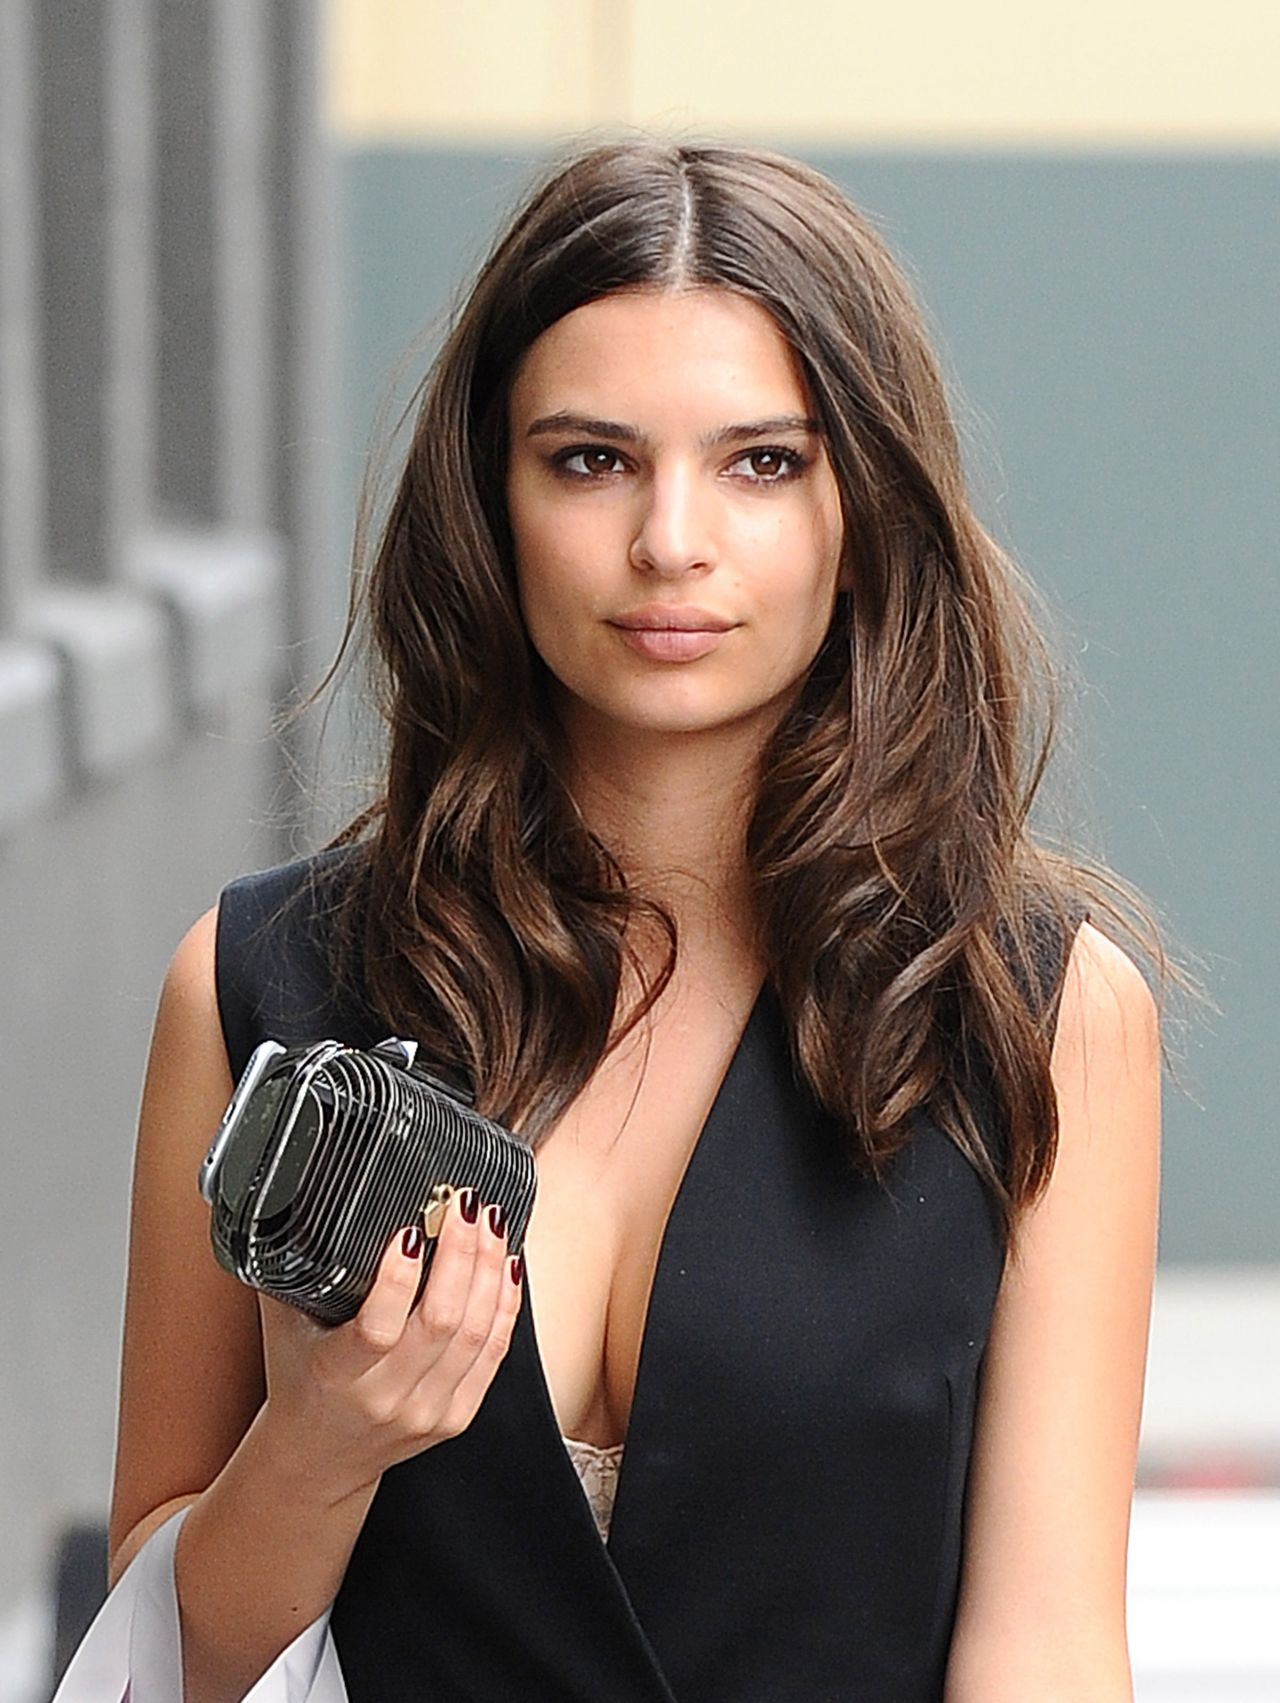 c0110b93a5 Emily Ratajkowski Latest Photos - CelebMafia